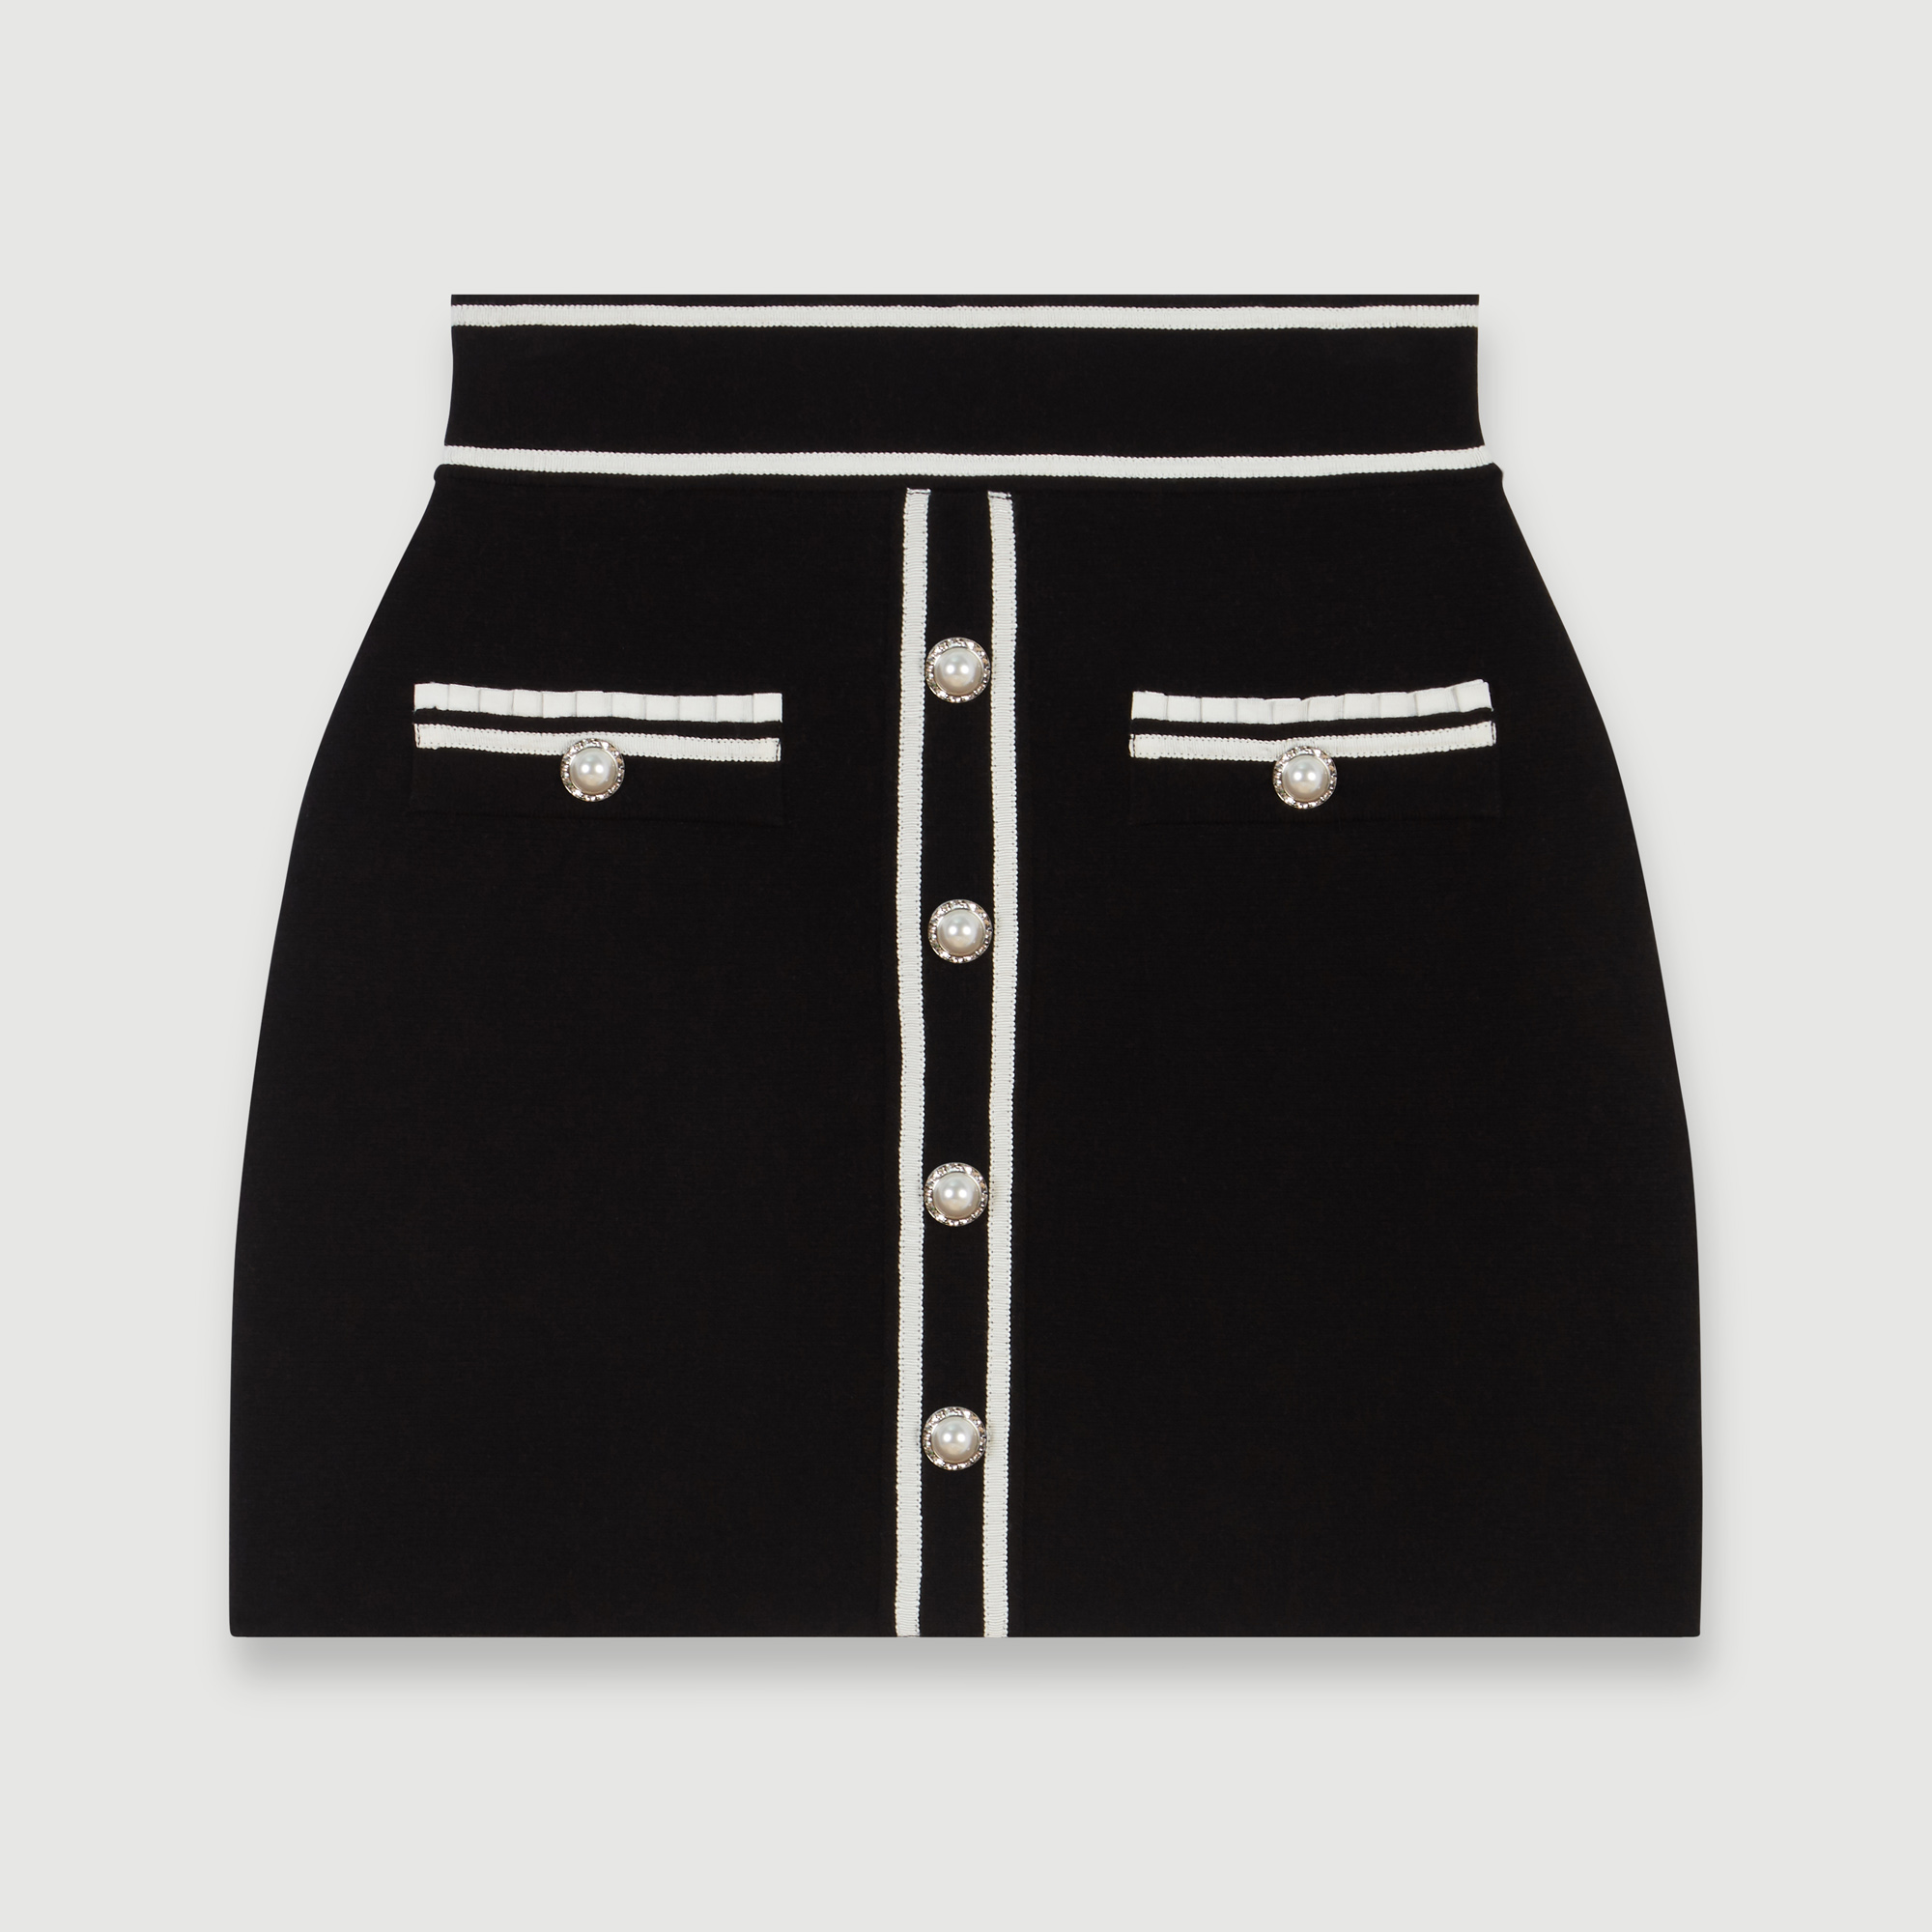 Jeweled contrast knit skirt - Black